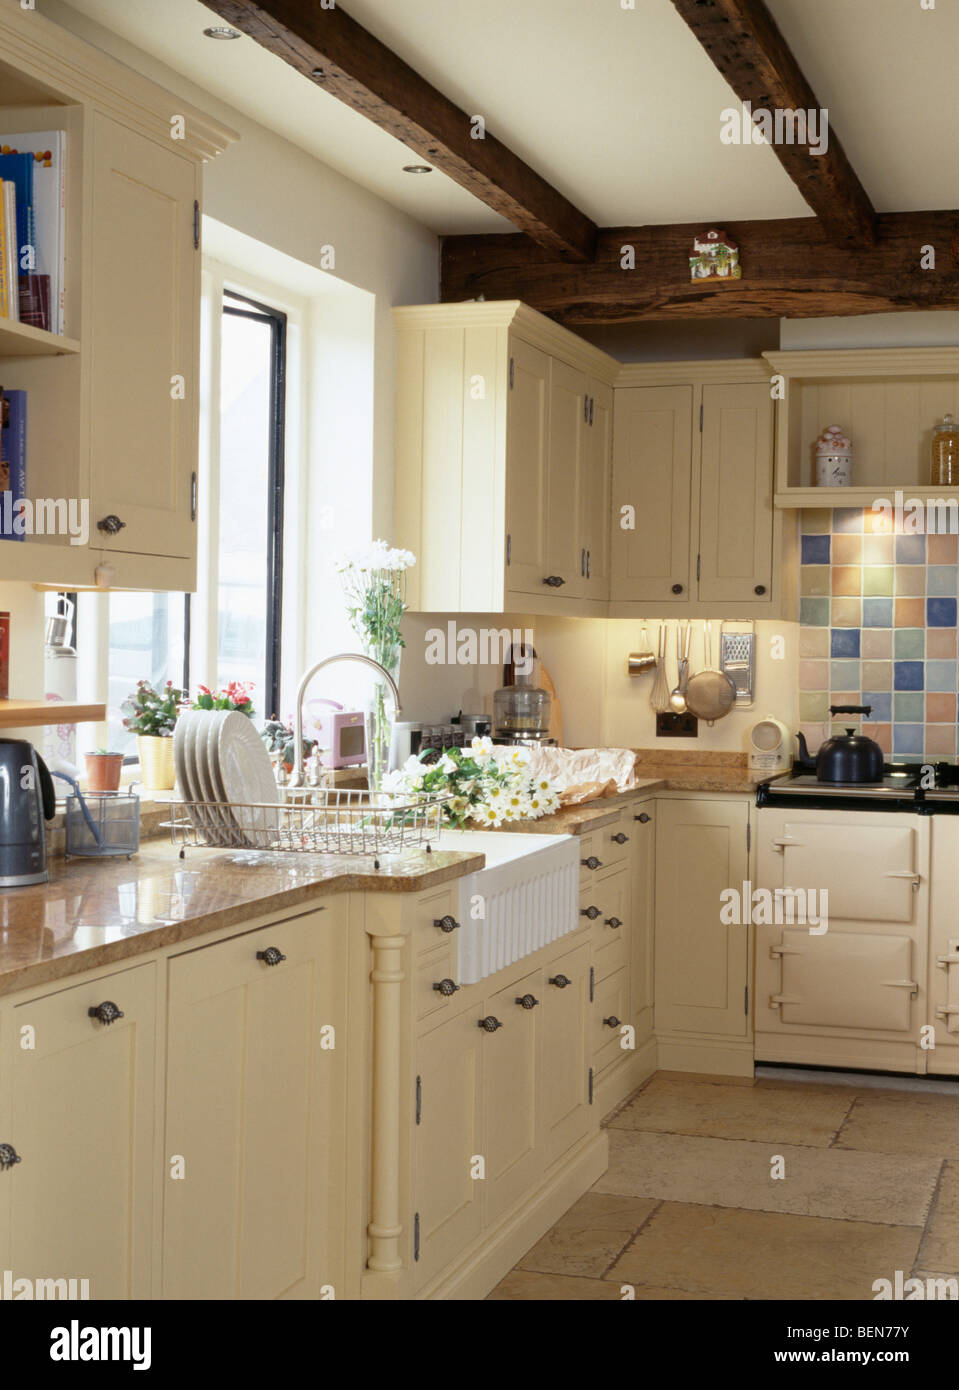 Belfast sink below window in country cottage kitchen with cream stock photo royalty free image - Pictures of country cottage kitchens ...